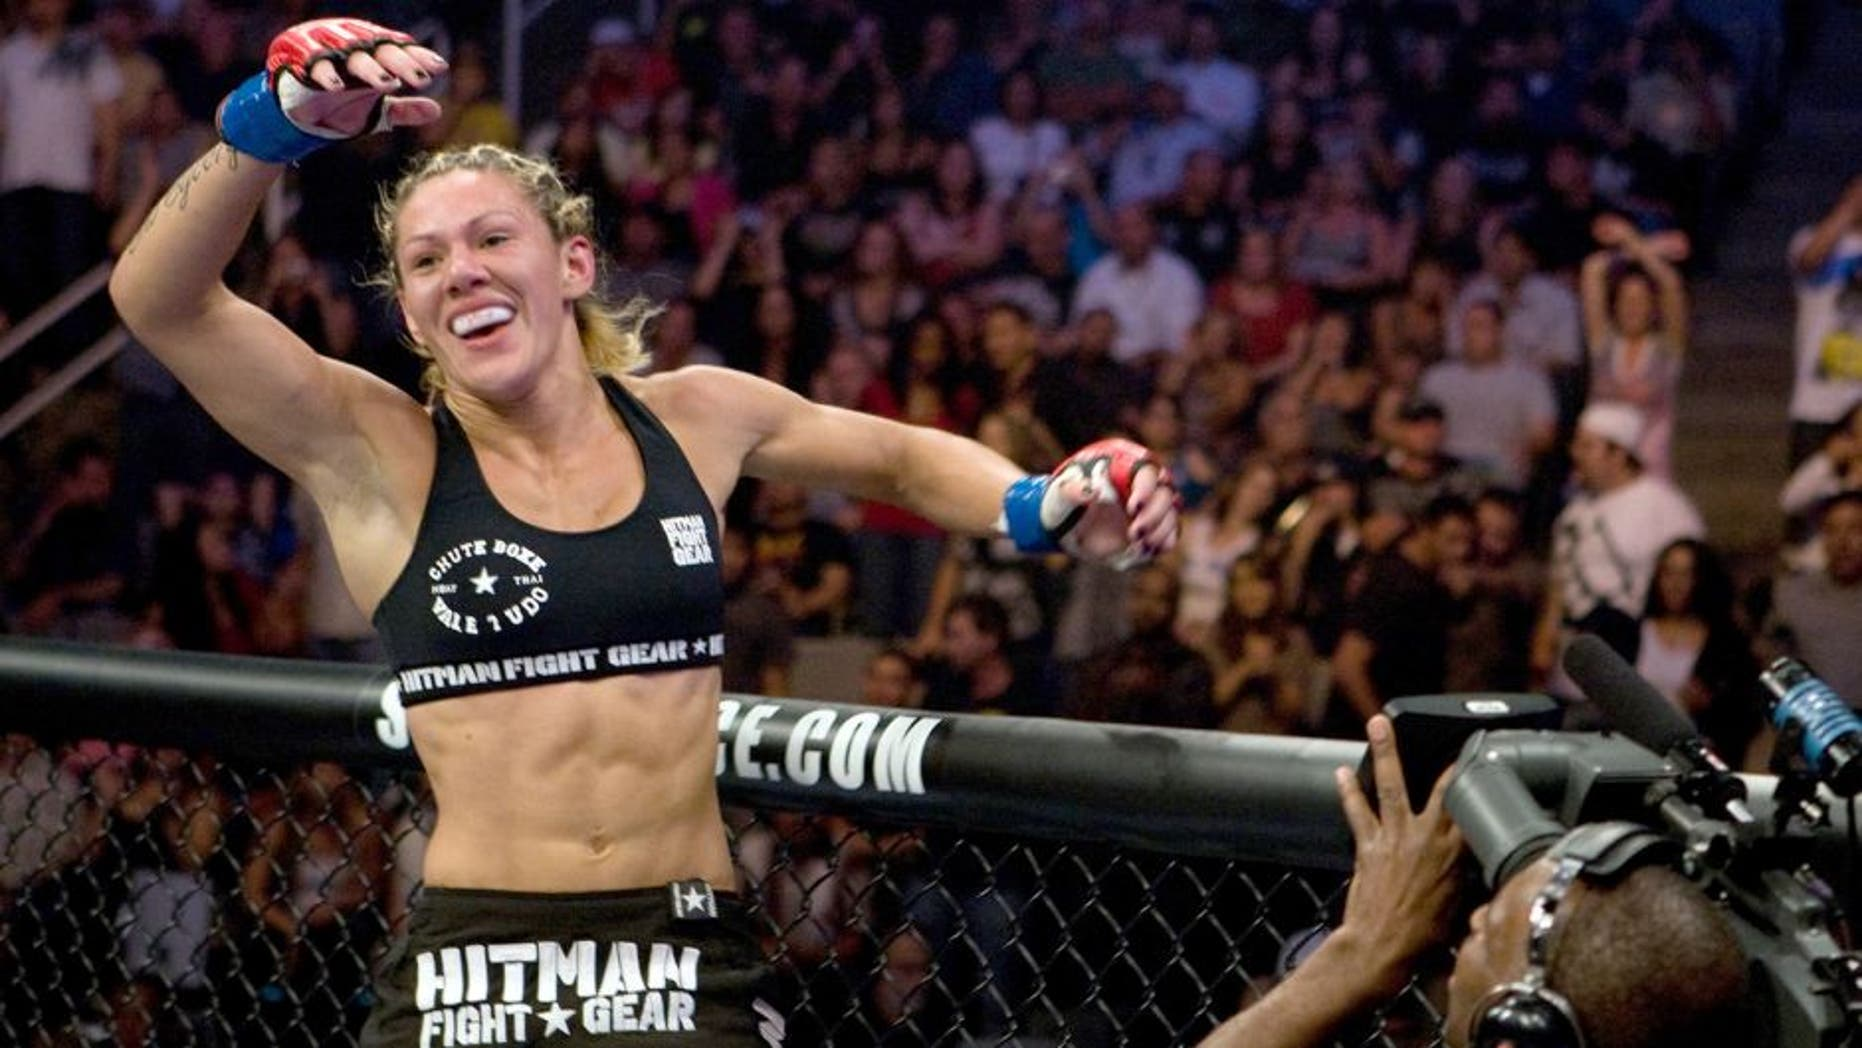 SAN JOSE, CA - AUGUST 15: Cristiane 'Cyborg' Santos celebrates after her victory over Gina Carano during the inaugural Strikeforce Women's Championship event at HP Pavilion on August 15, 2009 in San Jose, California. (Photo by Esther Lin/Forza LLC/Forza LLC via Getty Images) *** Local Caption *** Cristiane Santos; Gina Carano